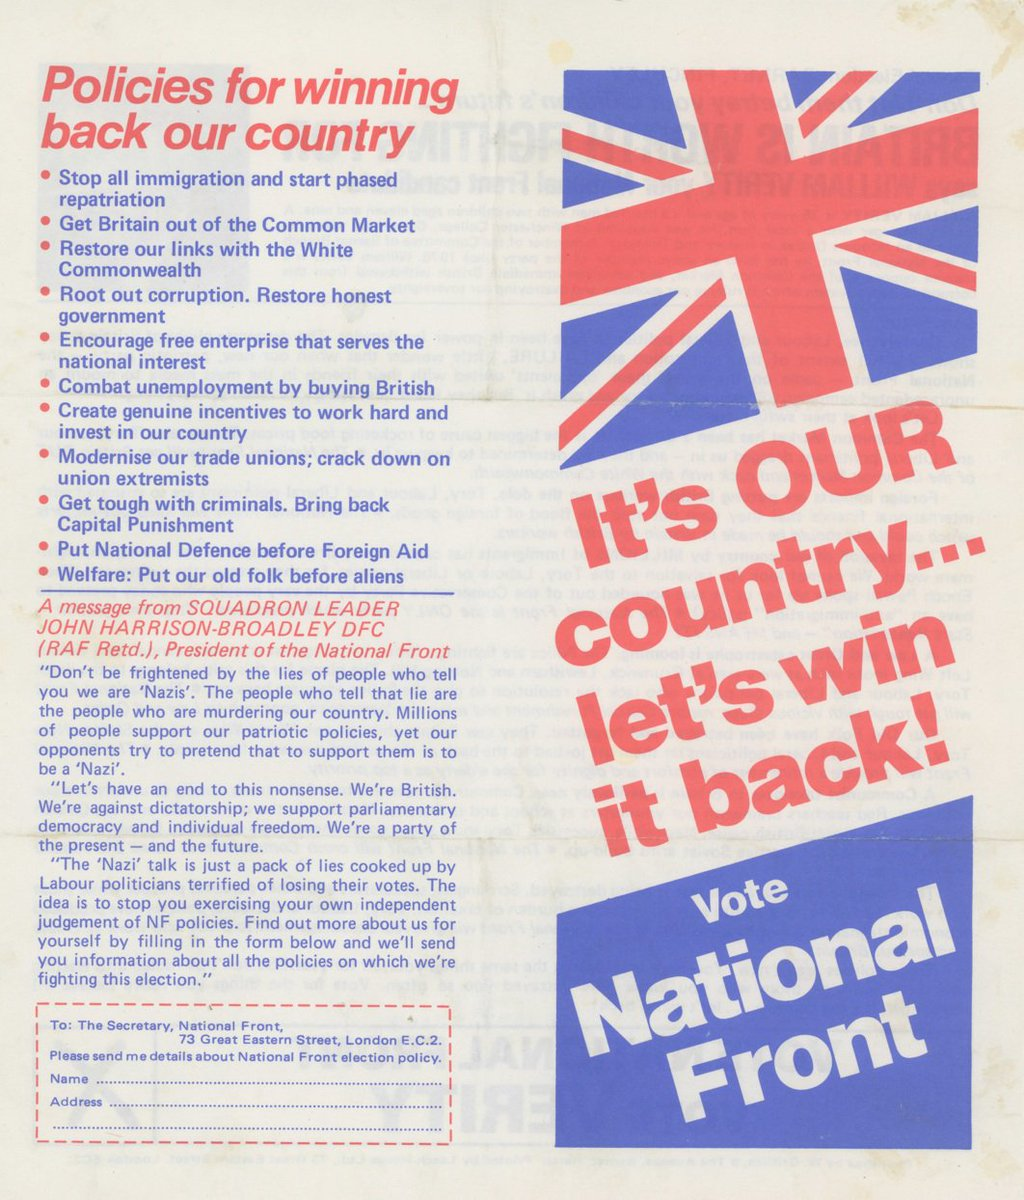 Another relevant item from Brit-town's '70s archive: an NF election leaflet. https://t.co/btbTH7sDB6